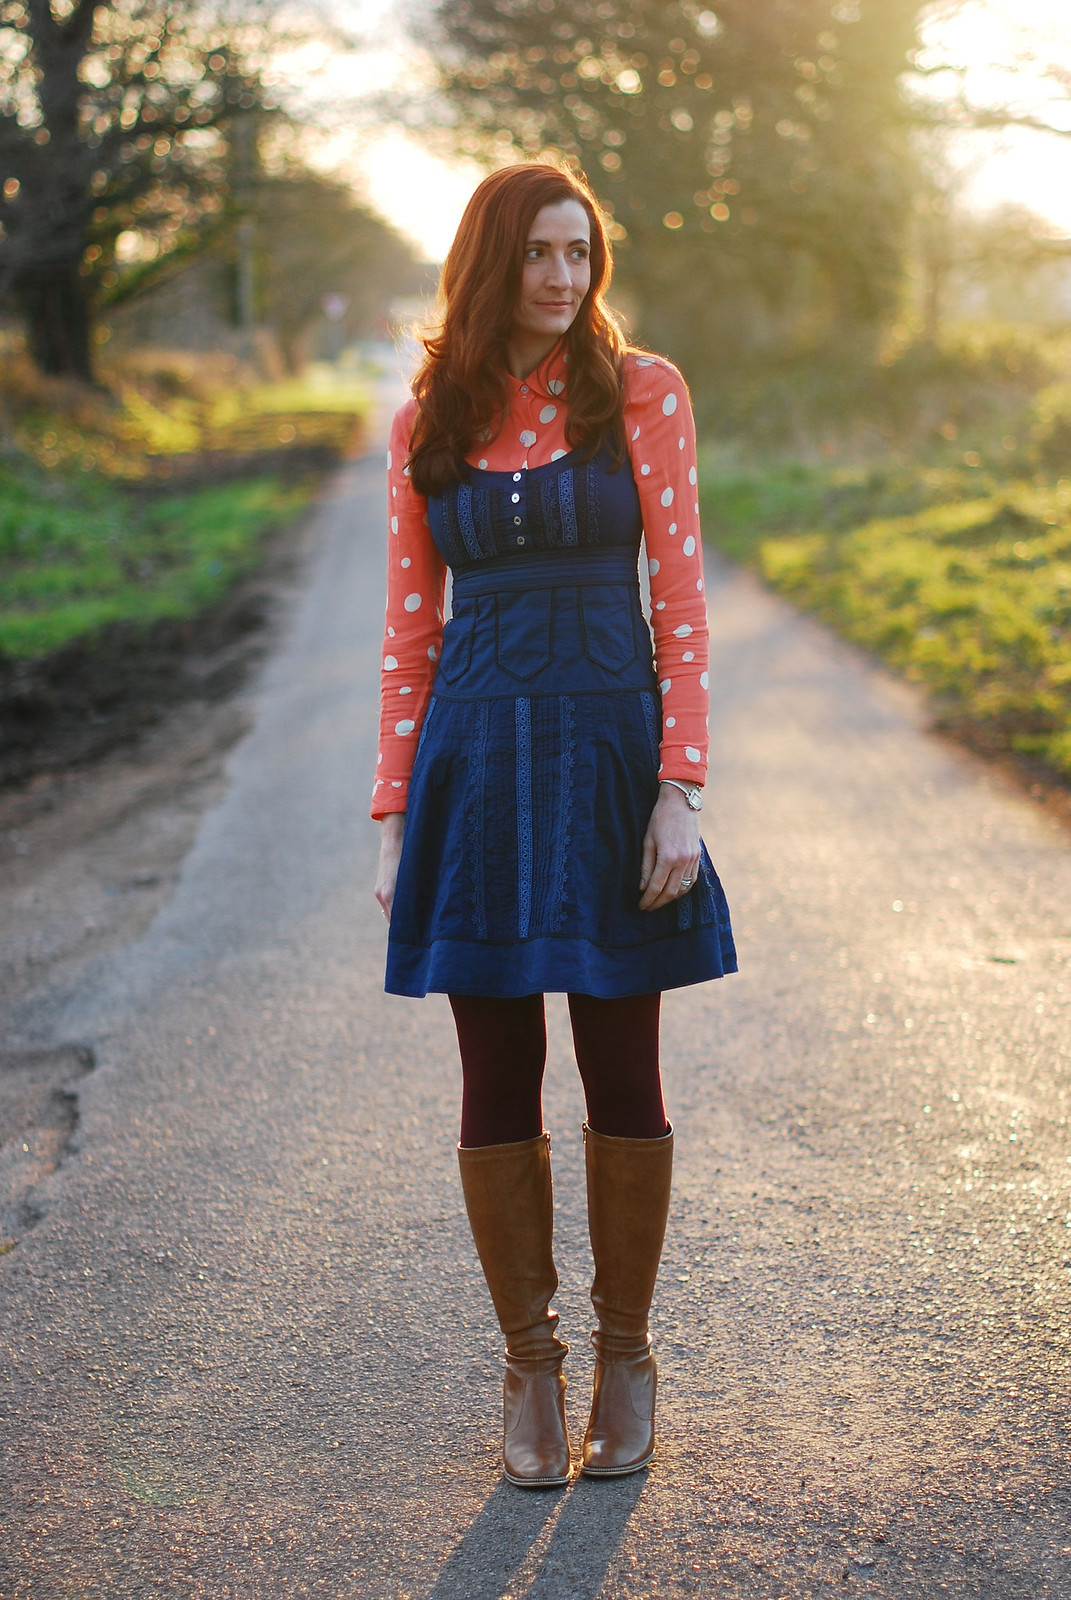 Polka dot shirt & navy pinafore dress